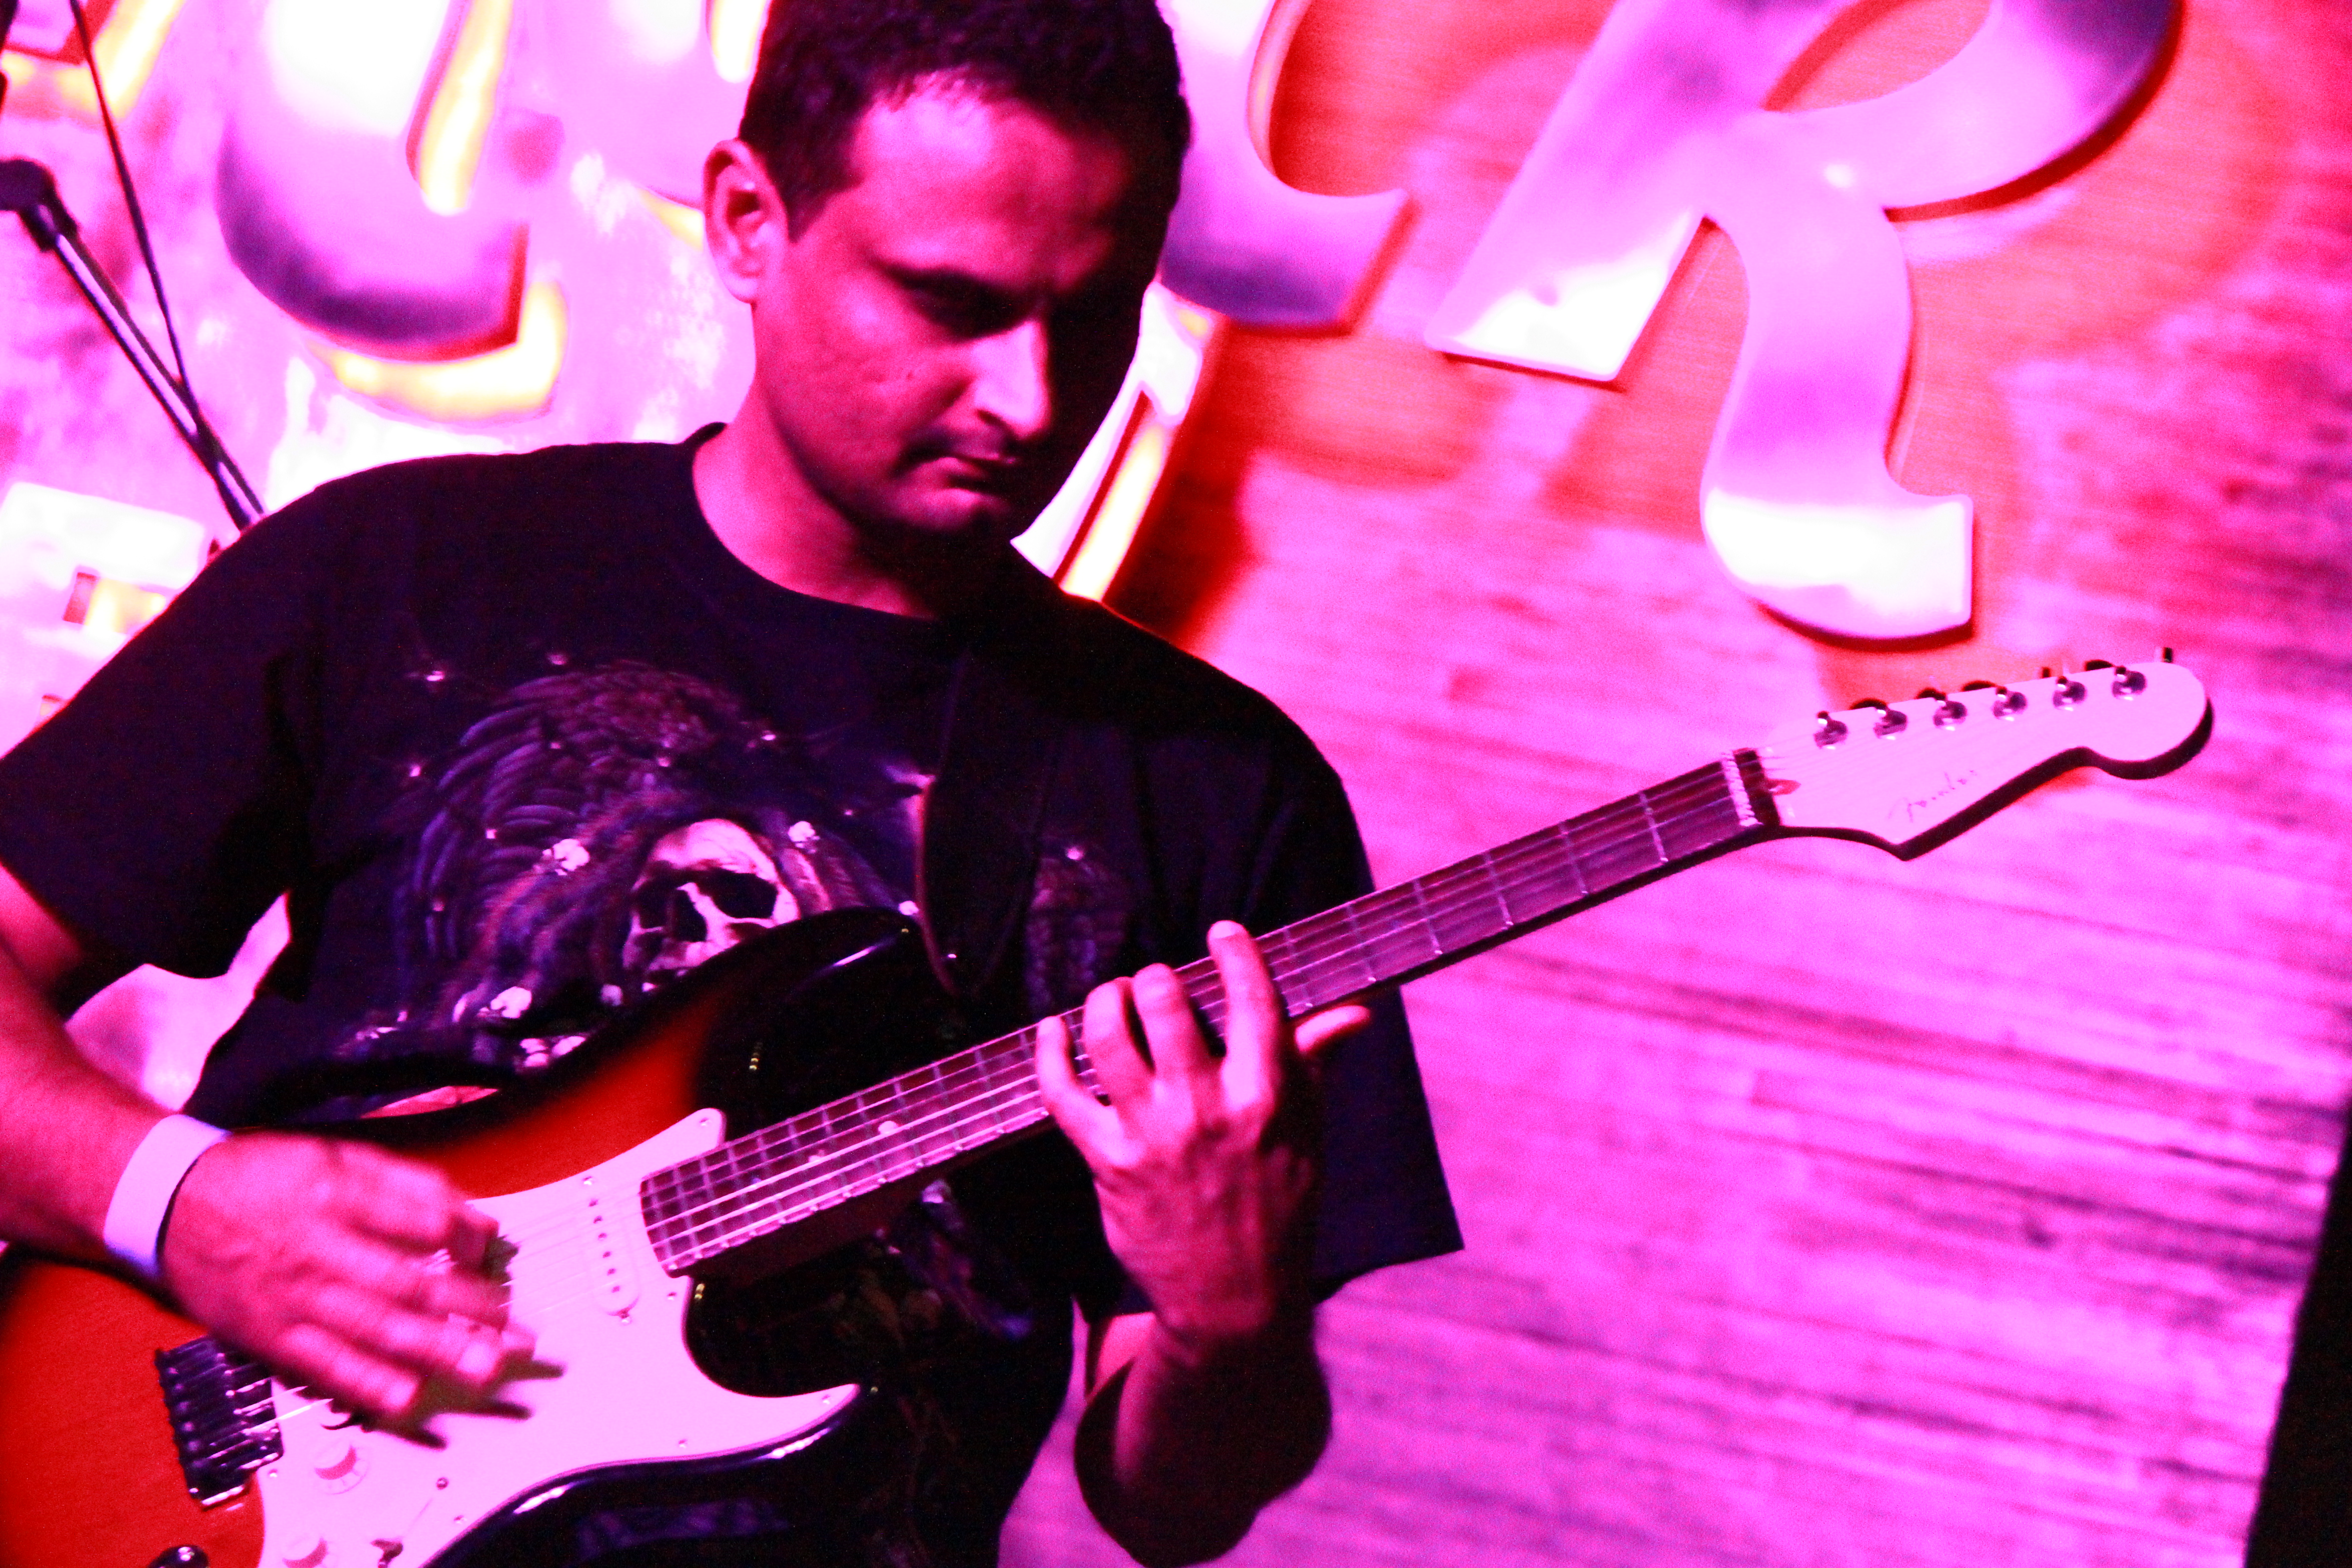 Sonic Flare at Hard Rock Cafe, Hyderabad